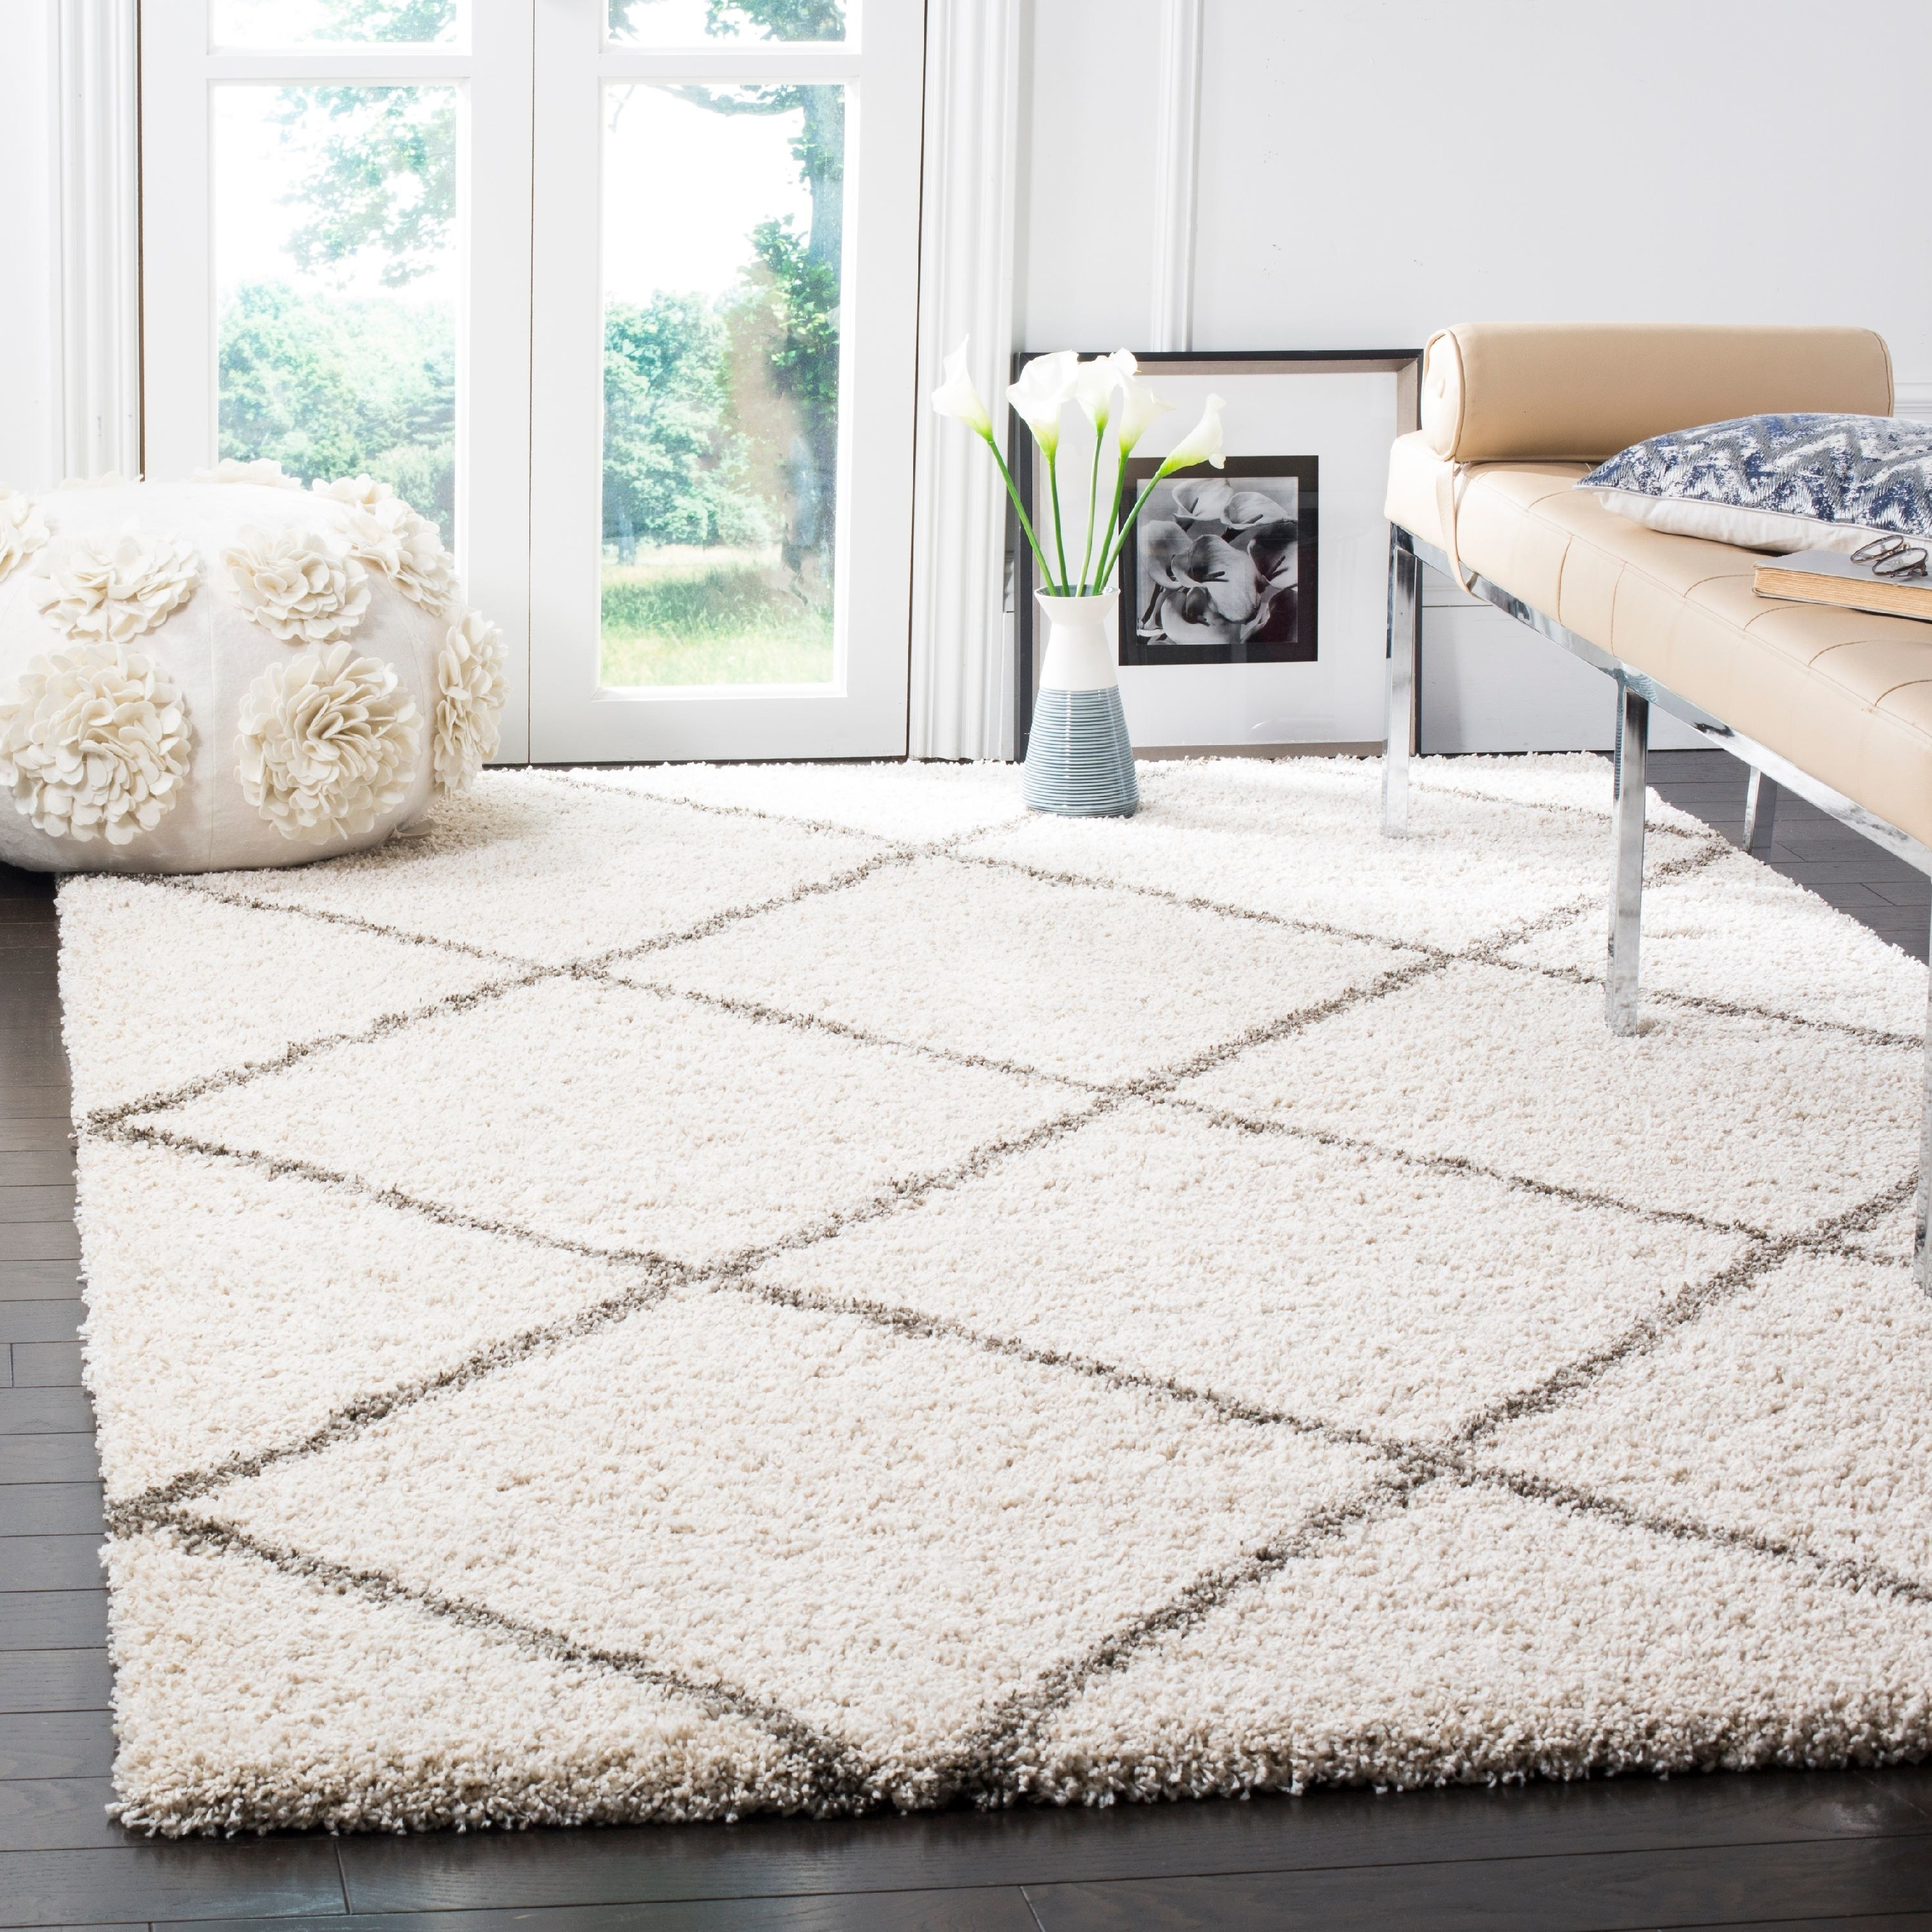 The shag area rug in white and gray